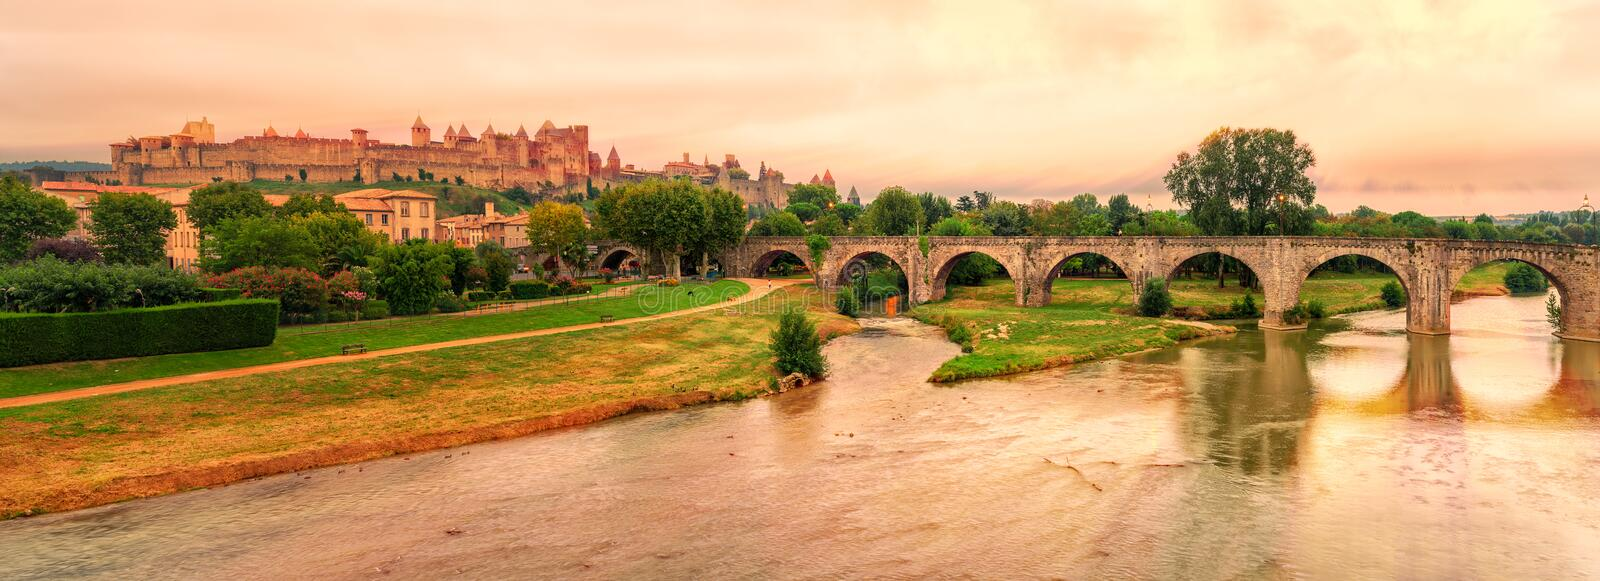 Carcassonne, France stock photography